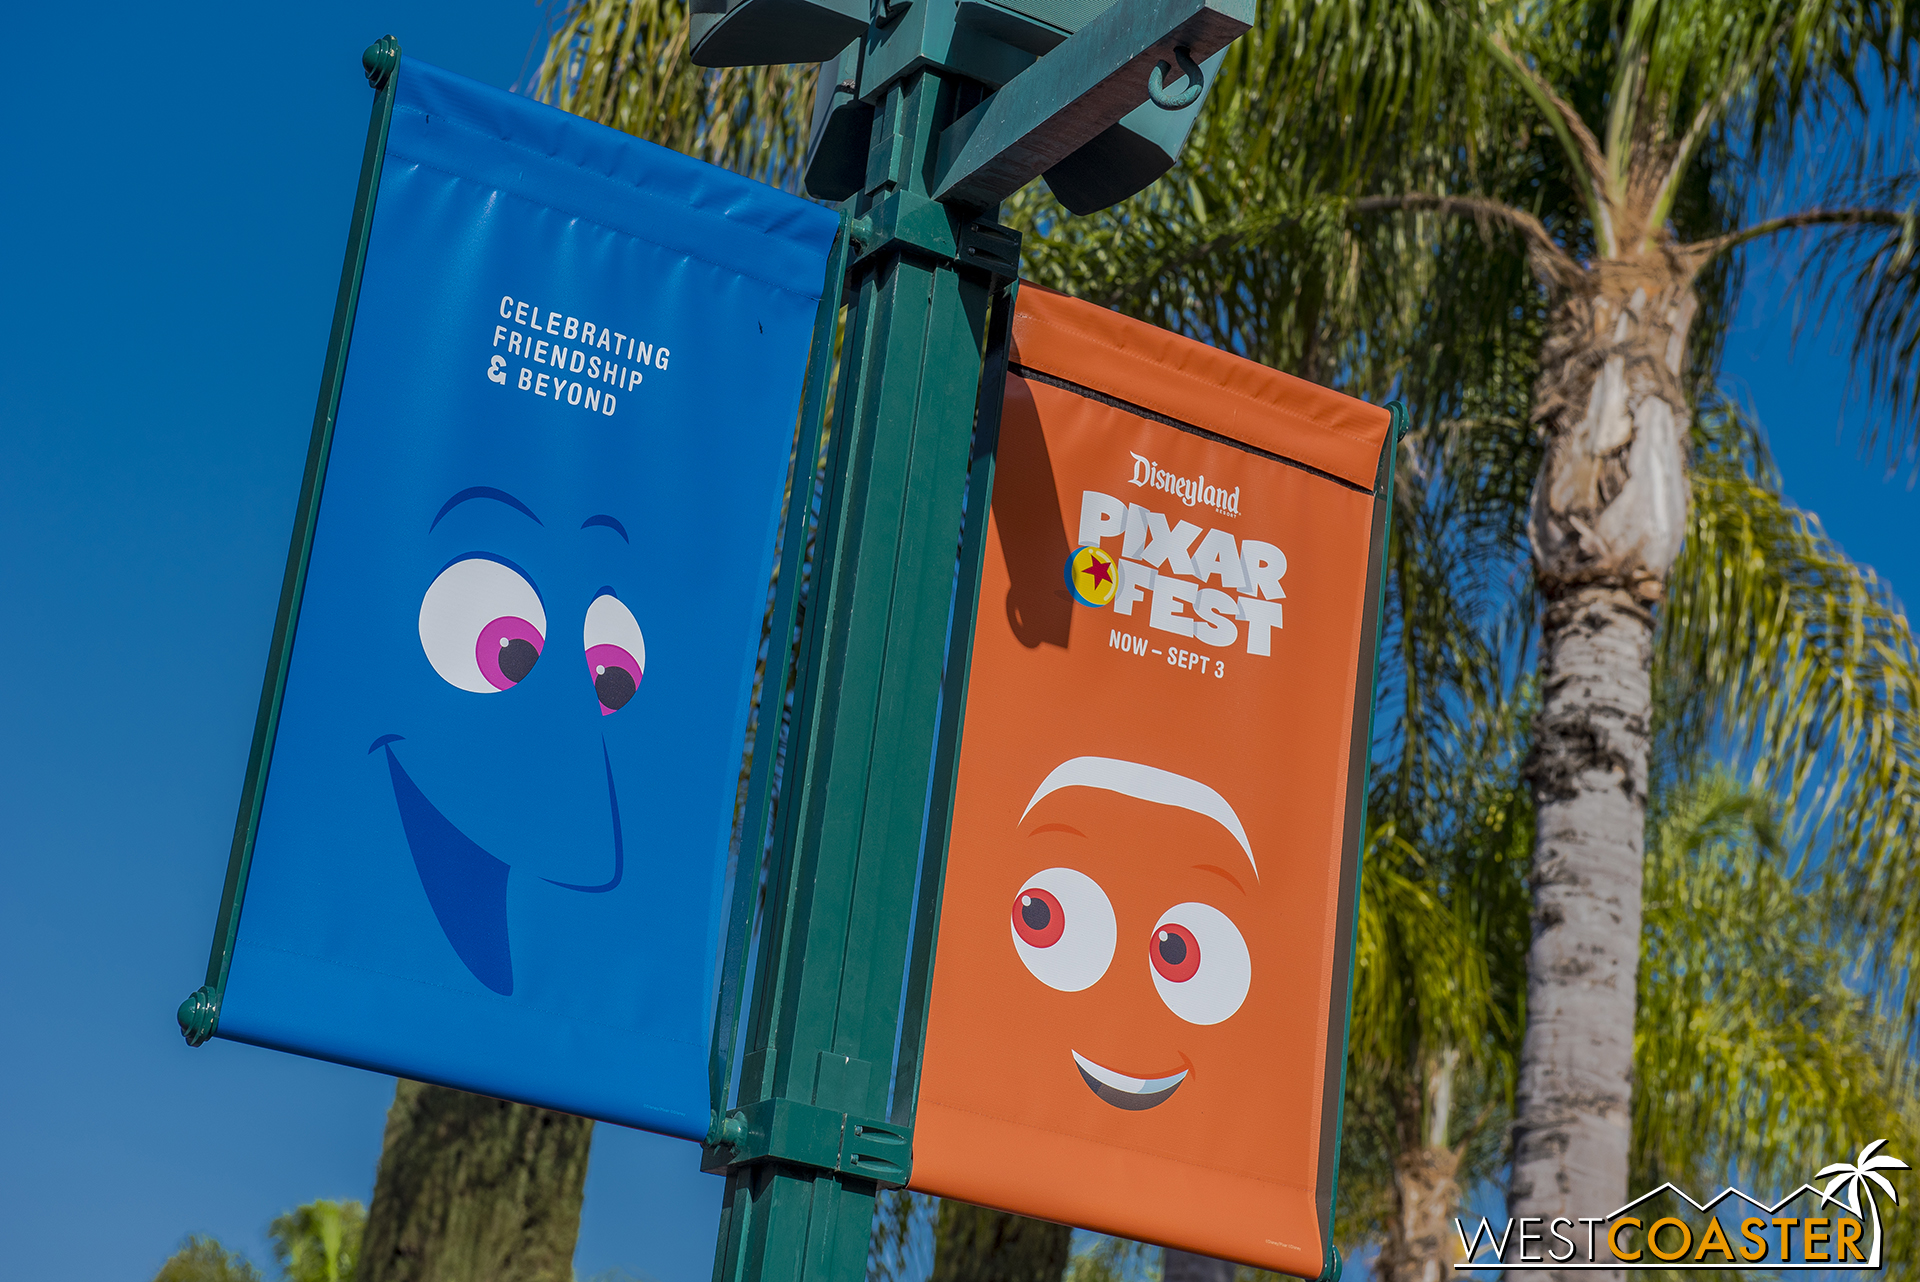 Banners are up all over the Disneyland Resort to promote Pixar Fest.